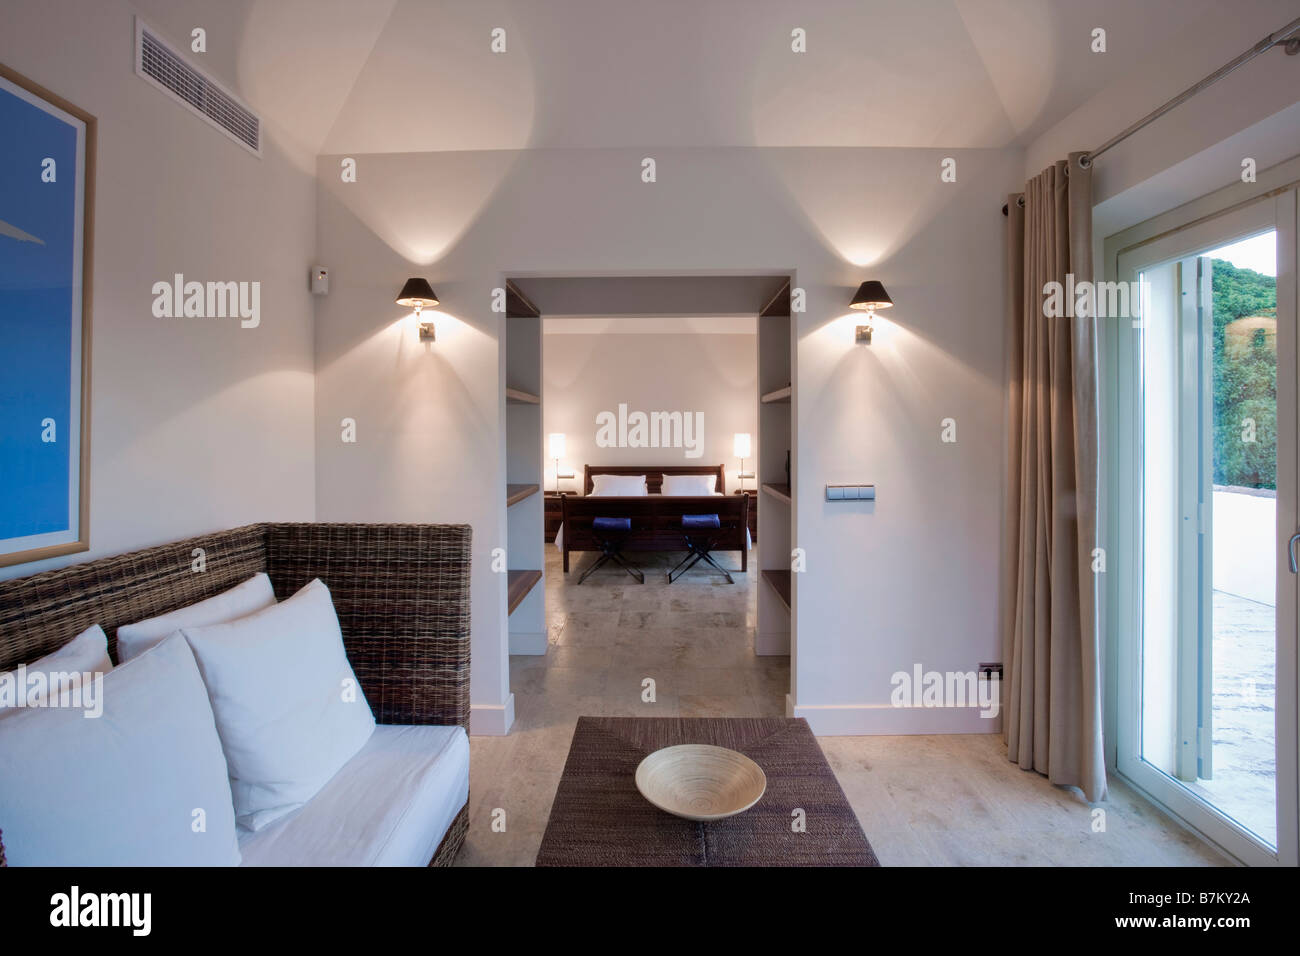 wall lamps living room walmart lighted lights on either side of doorway in modern spanish hotel suite